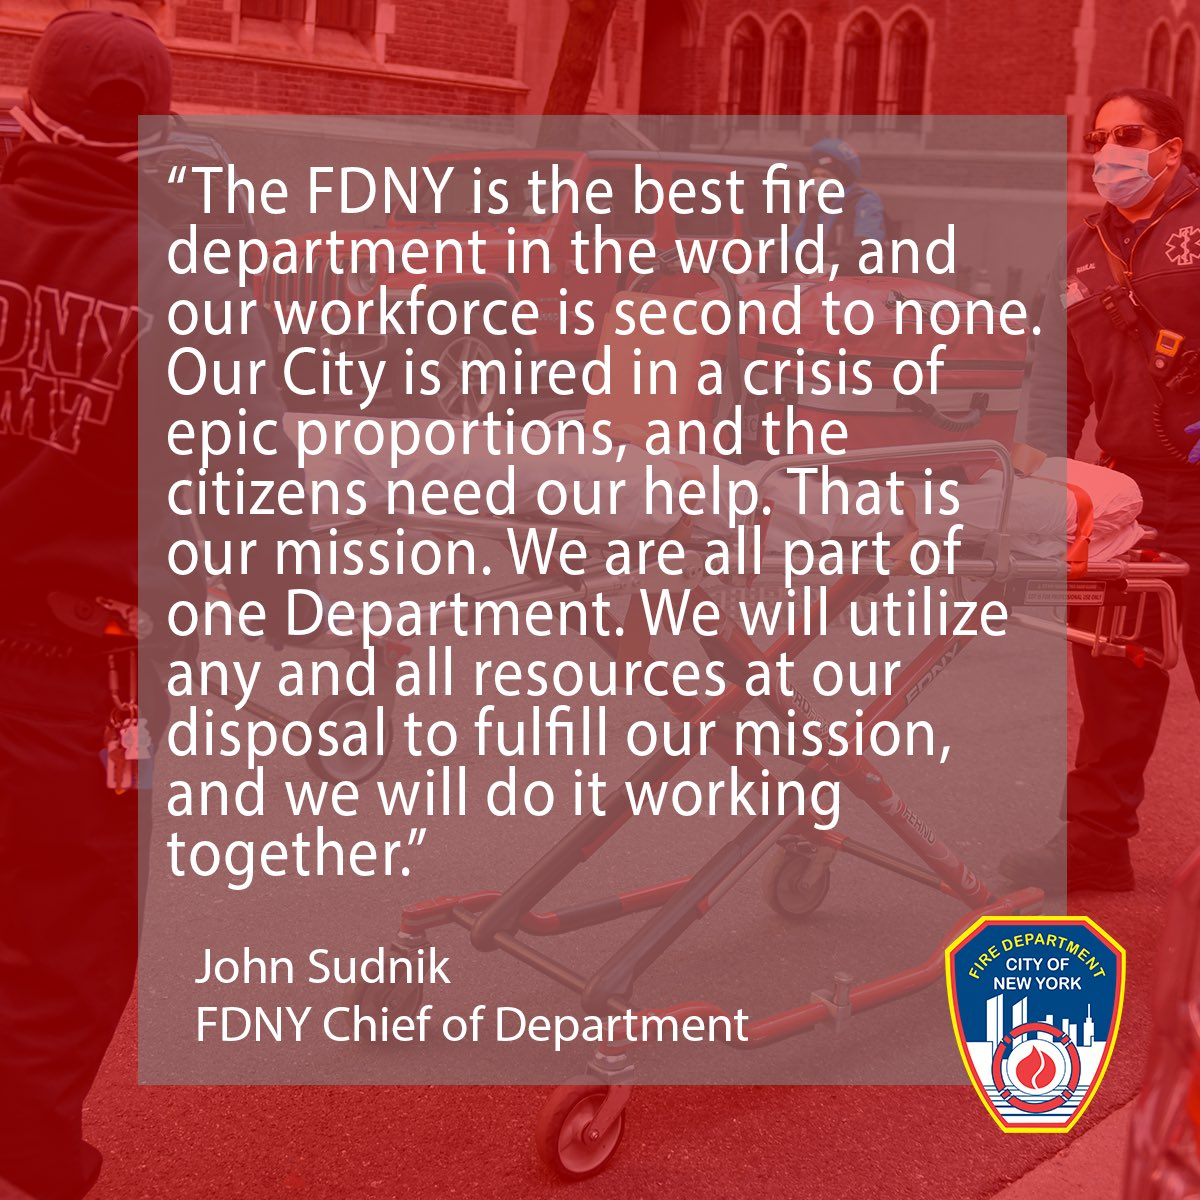 A message from FDNY Chief of Department John Sudnik sent today to all Fire and EMS members.